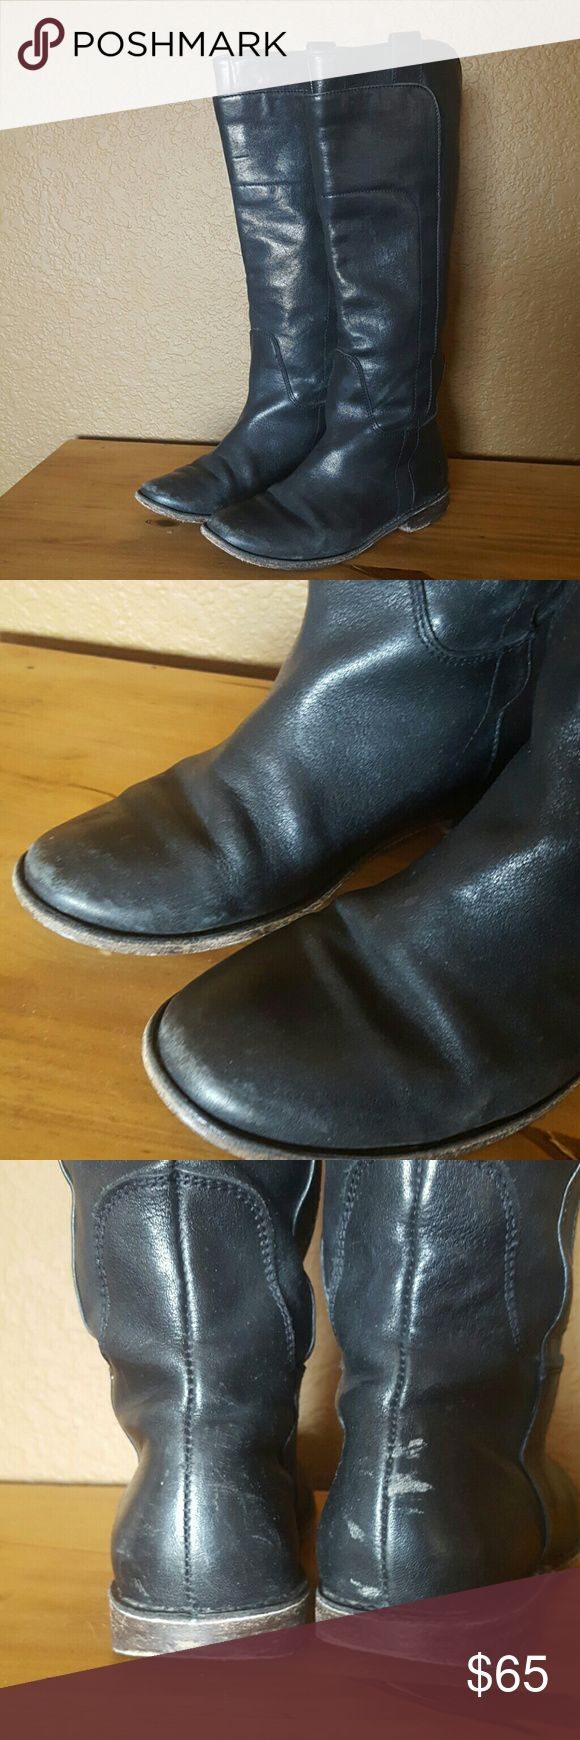 Frye Paige Riding Boots Sz 6. Great condition with wear on heel area. See pic. Frye Shoes Heeled Boots